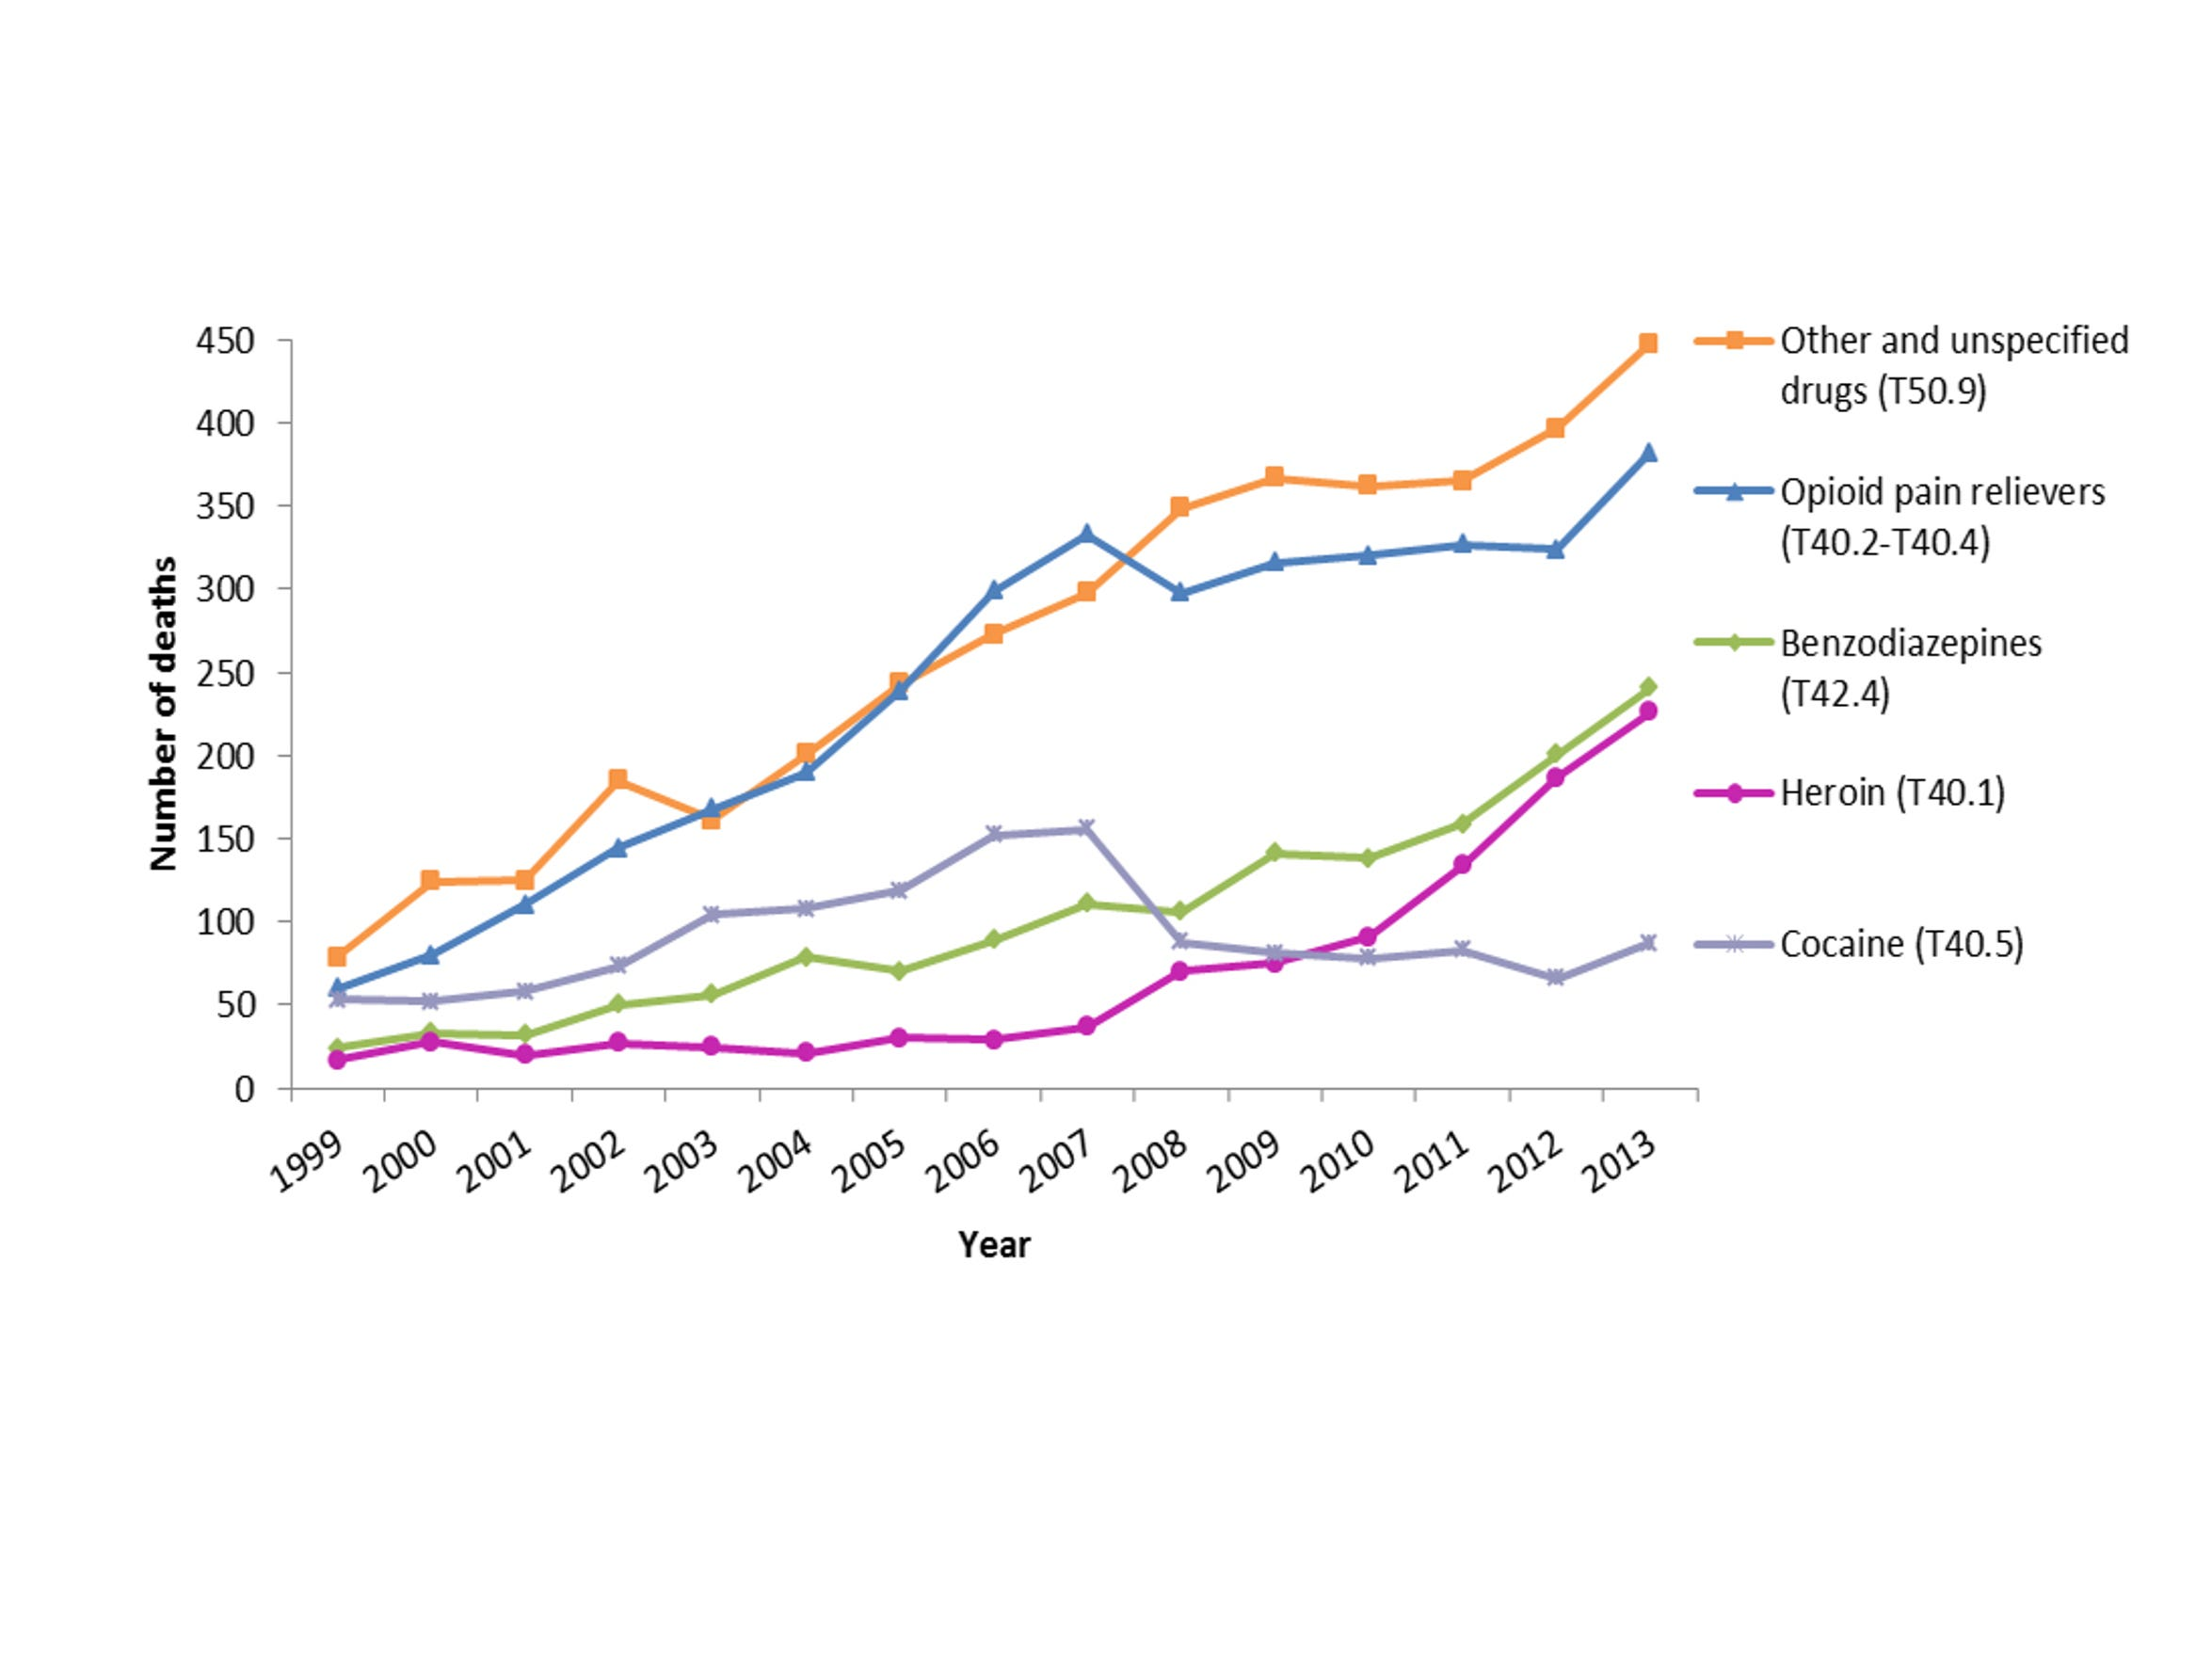 Graph showing the number of drug overdose deaths involving